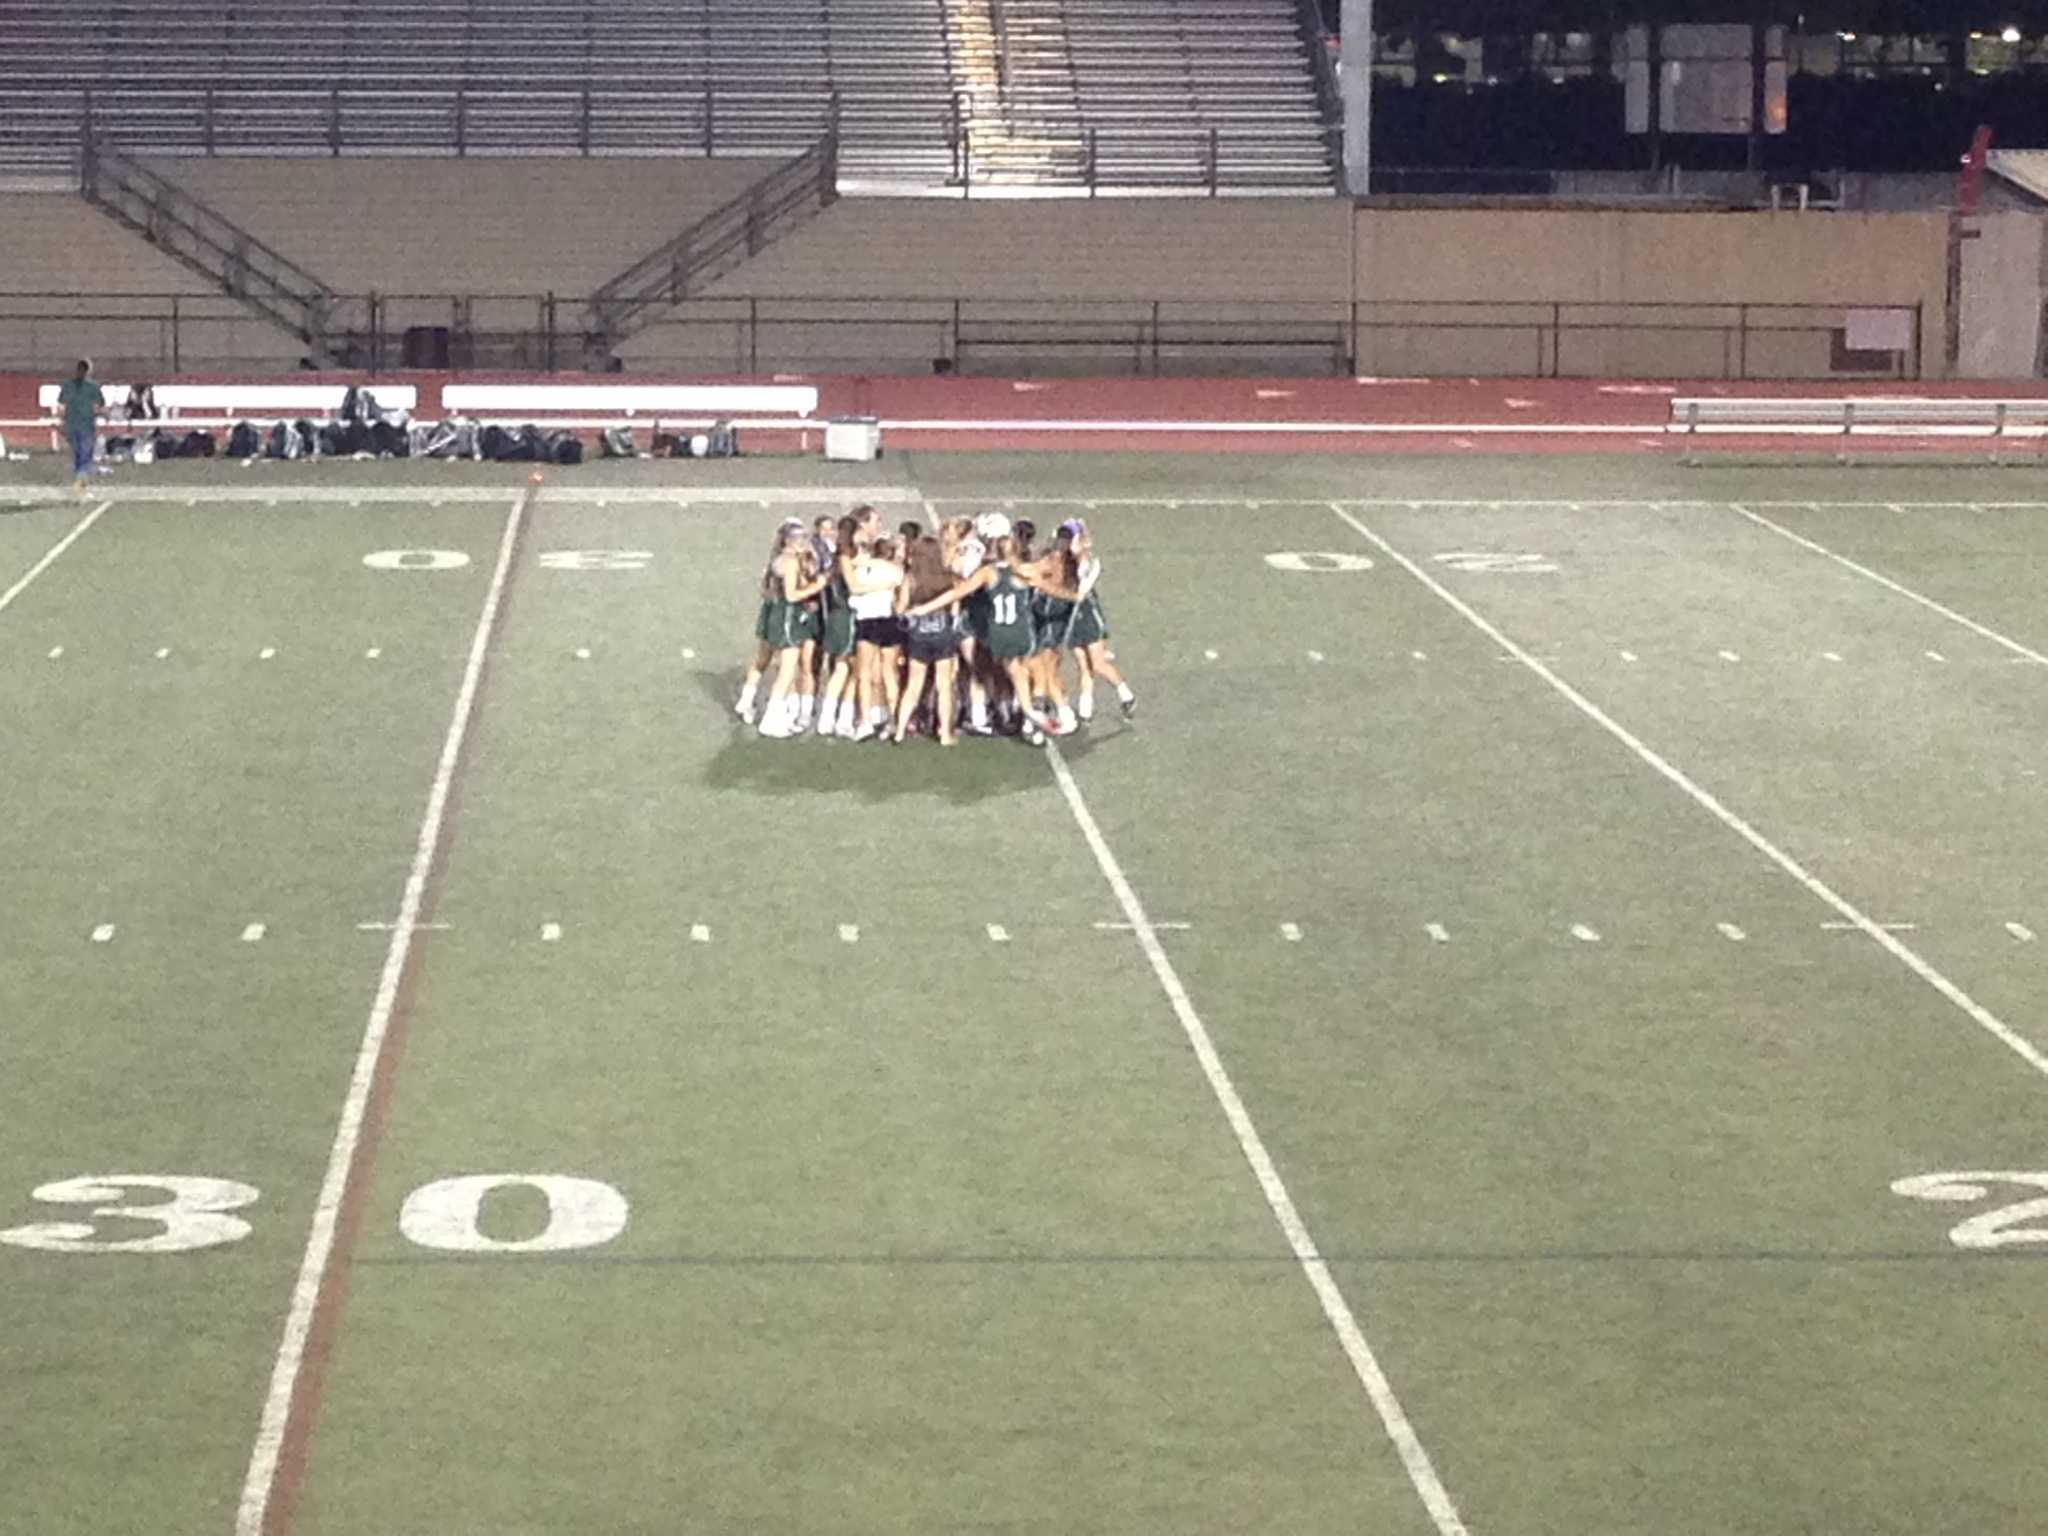 The Paly players huddle after beating Saint Francis in a very close game last year. This year, the Saint Francis Lancers will play for redemption. Photo by Molly Fogarty.